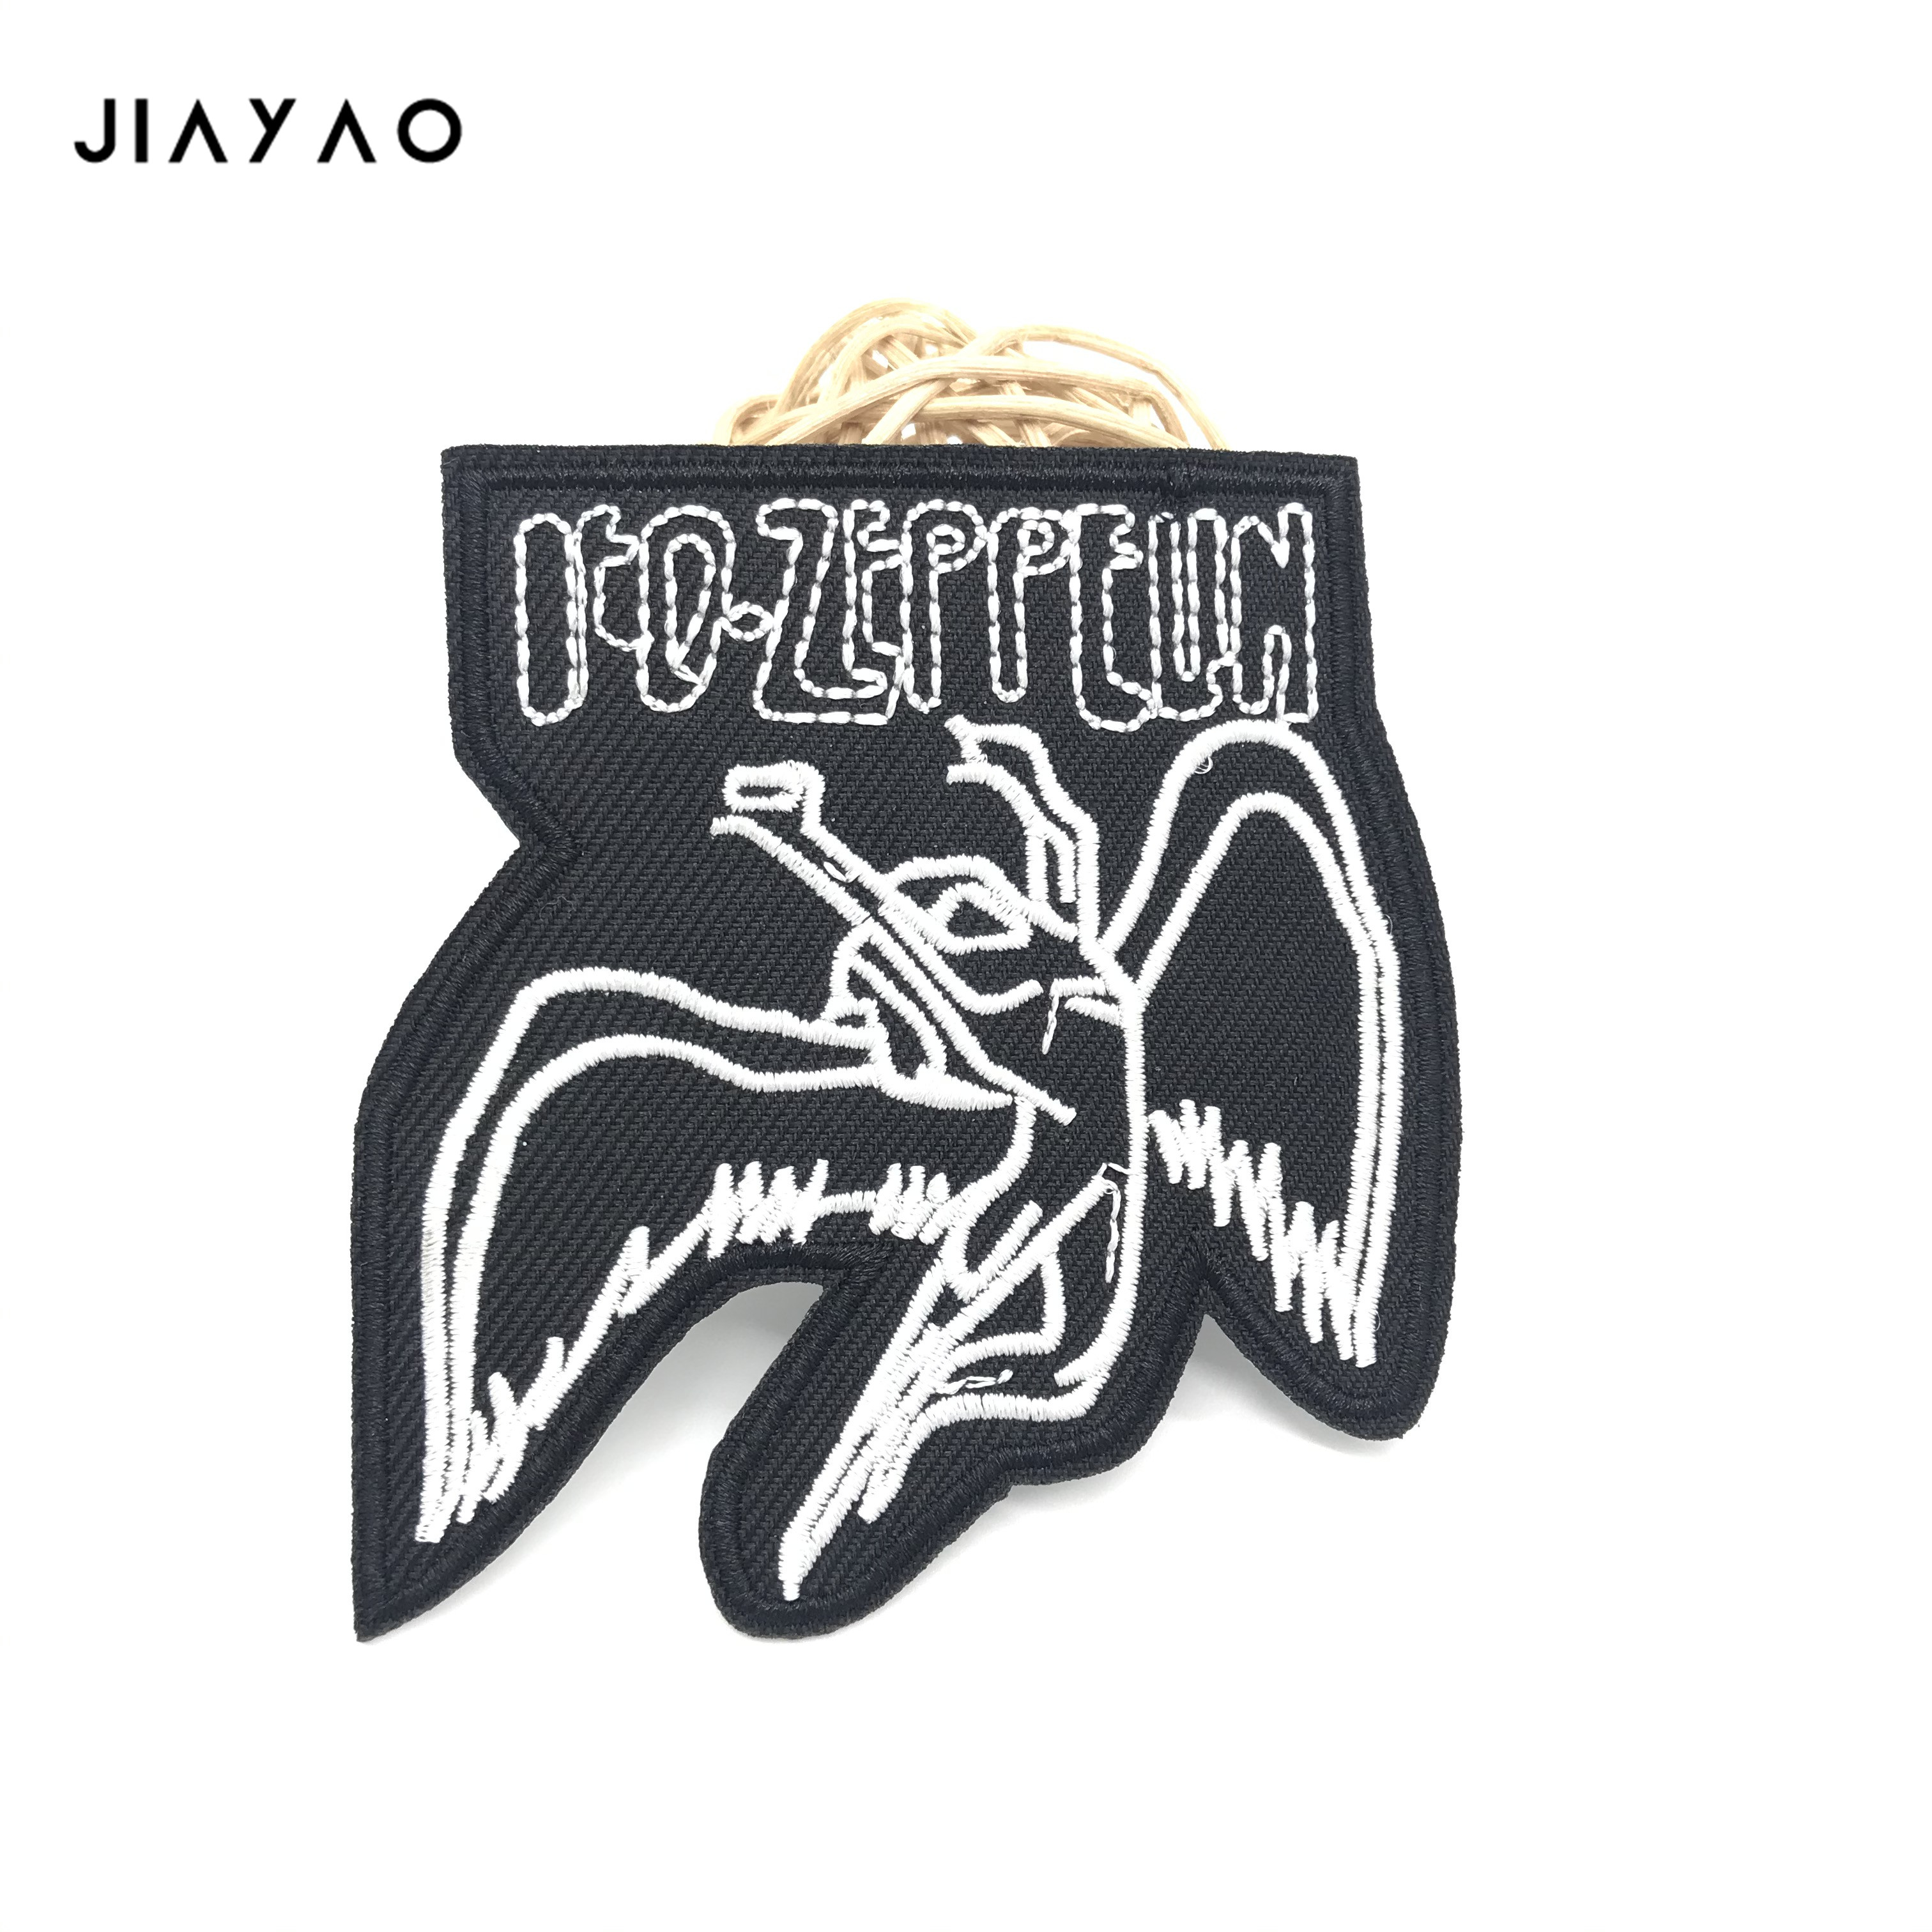 Купить с кэшбэком Embroidered Applique Rock music Patch Badges Sewing Iron On Badge Clothes Garment Apparel Accessories